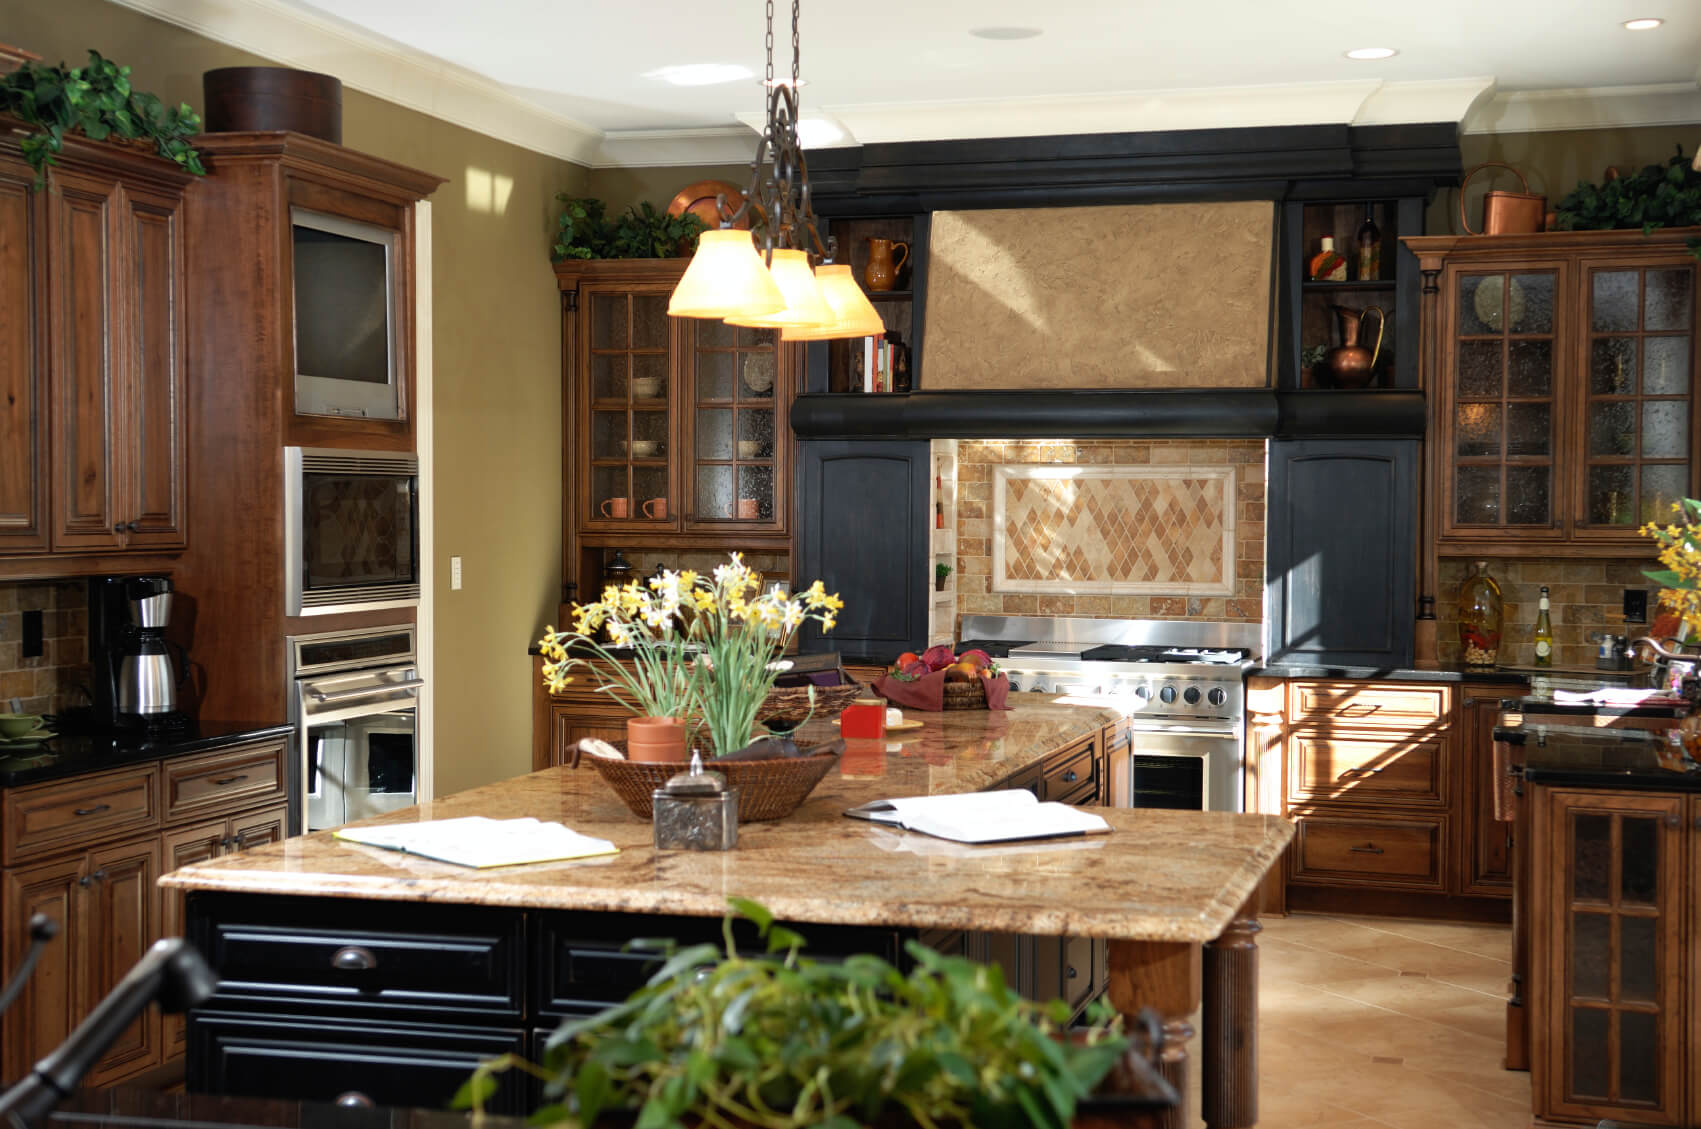 black wood cabinetry surrounds range with beige tile backsplash in this detailed kitchen l